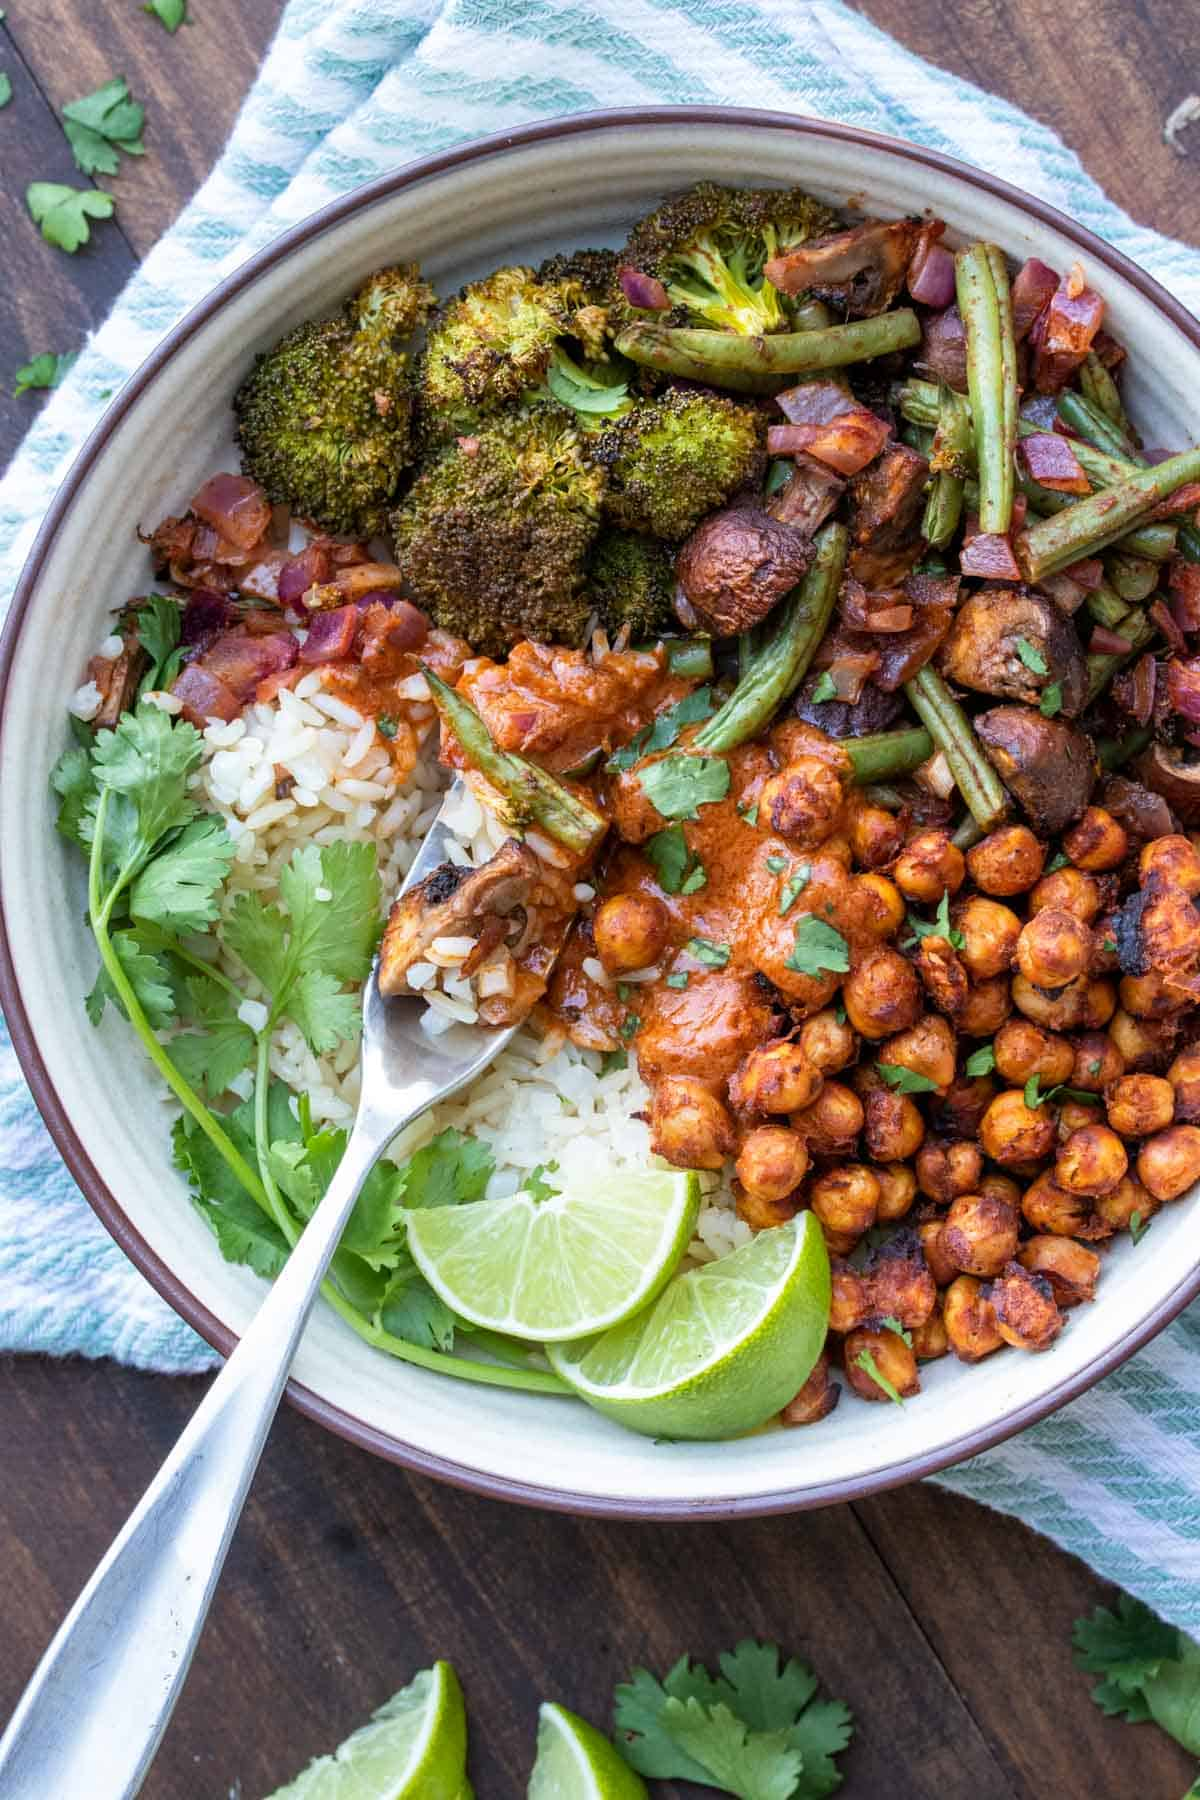 Fork getting a bite of rice with tikka masala sauce and roasted veggies and chickpeas